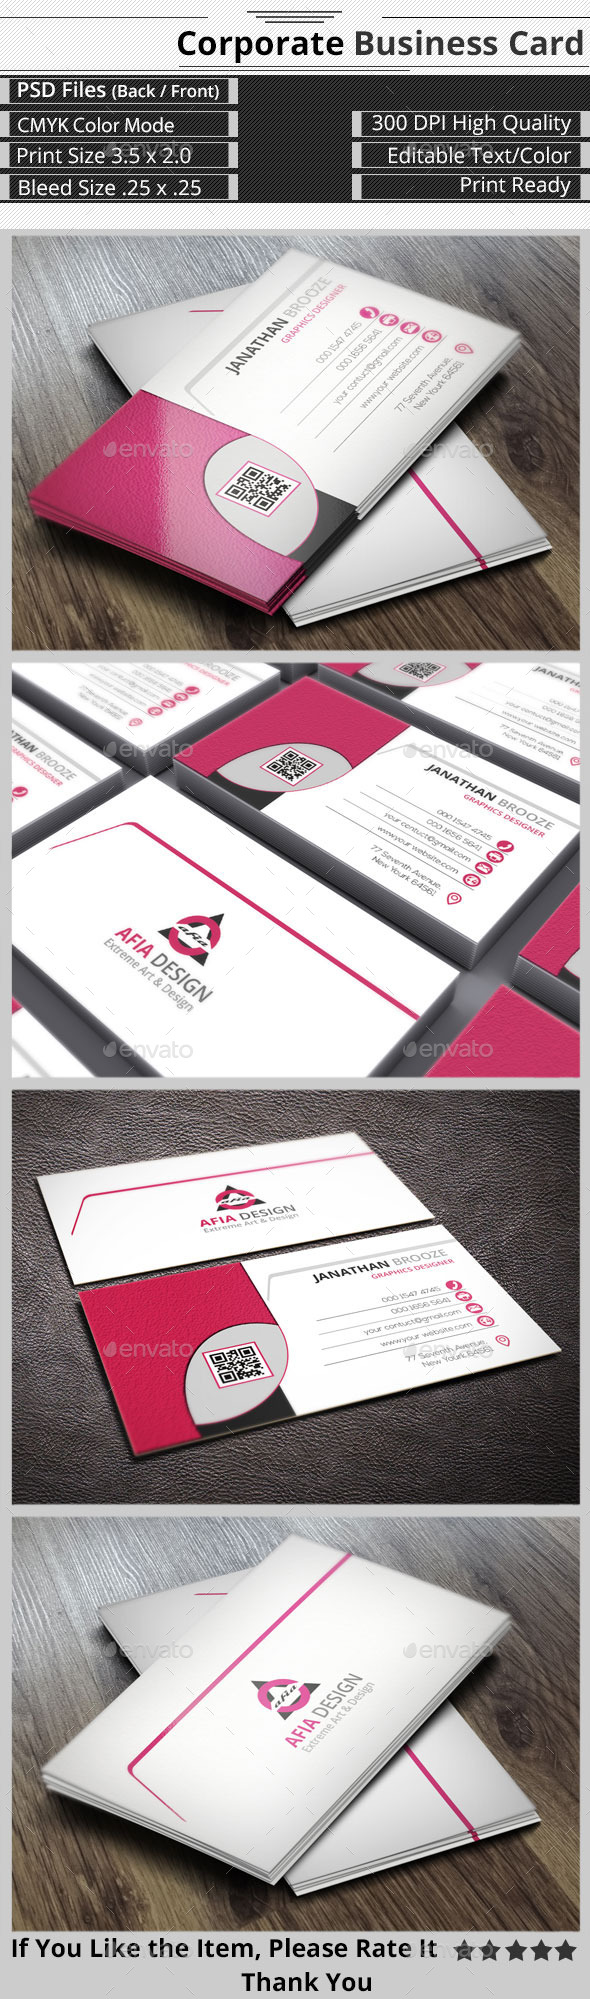 Clean & Smart Corporate Business Card - Corporate Business Cards